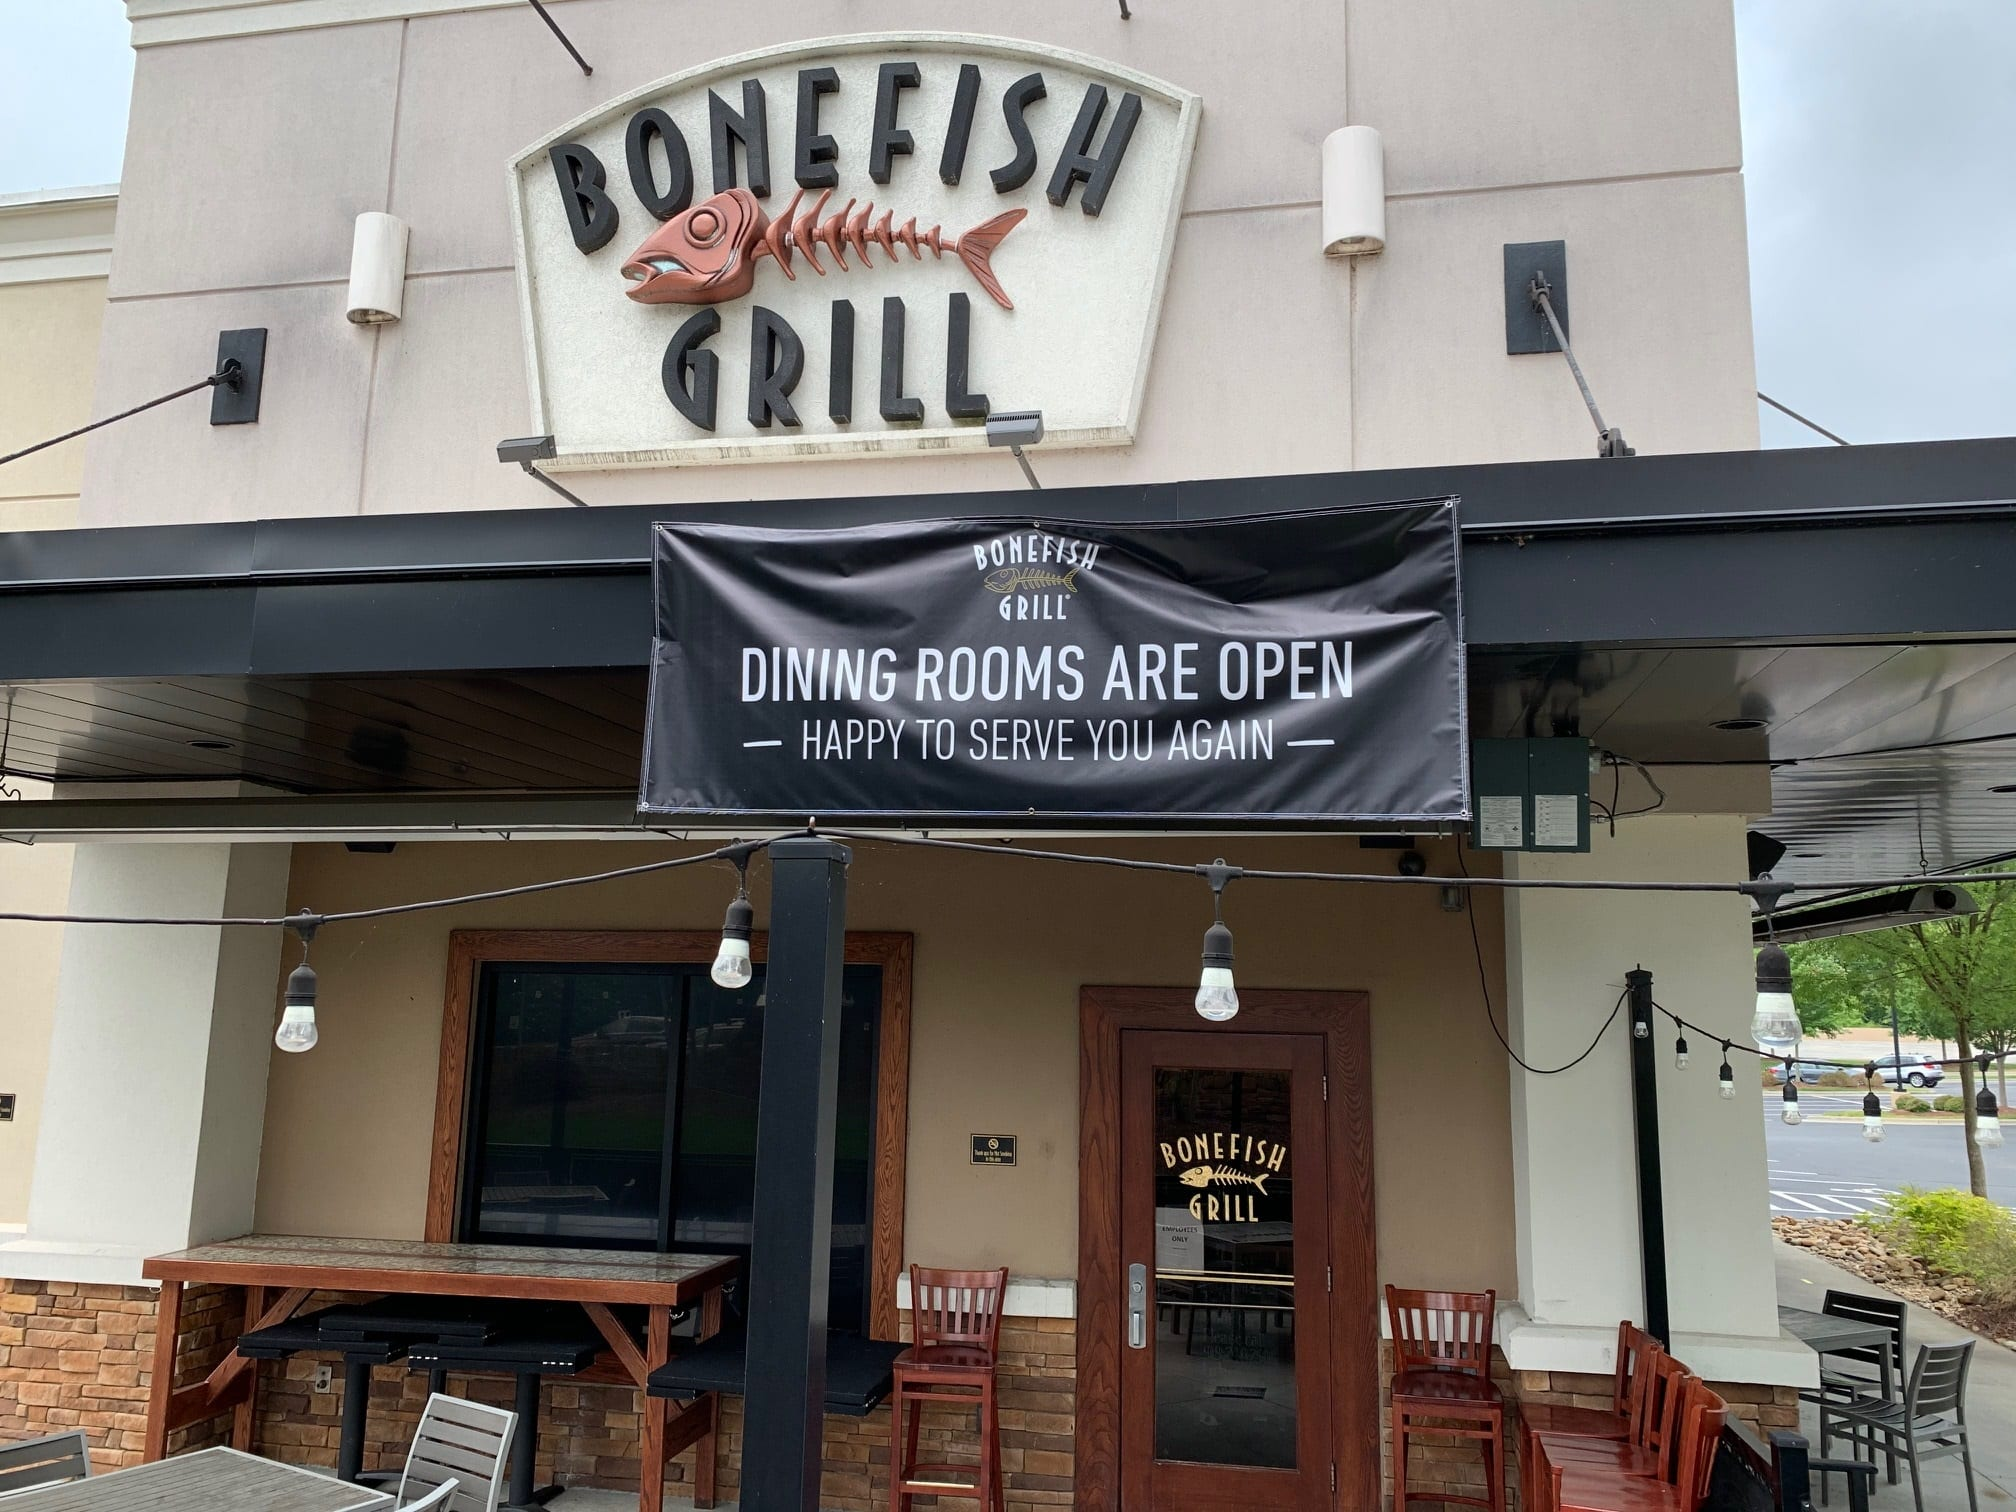 Bonefish grill open for dine-in at select locations